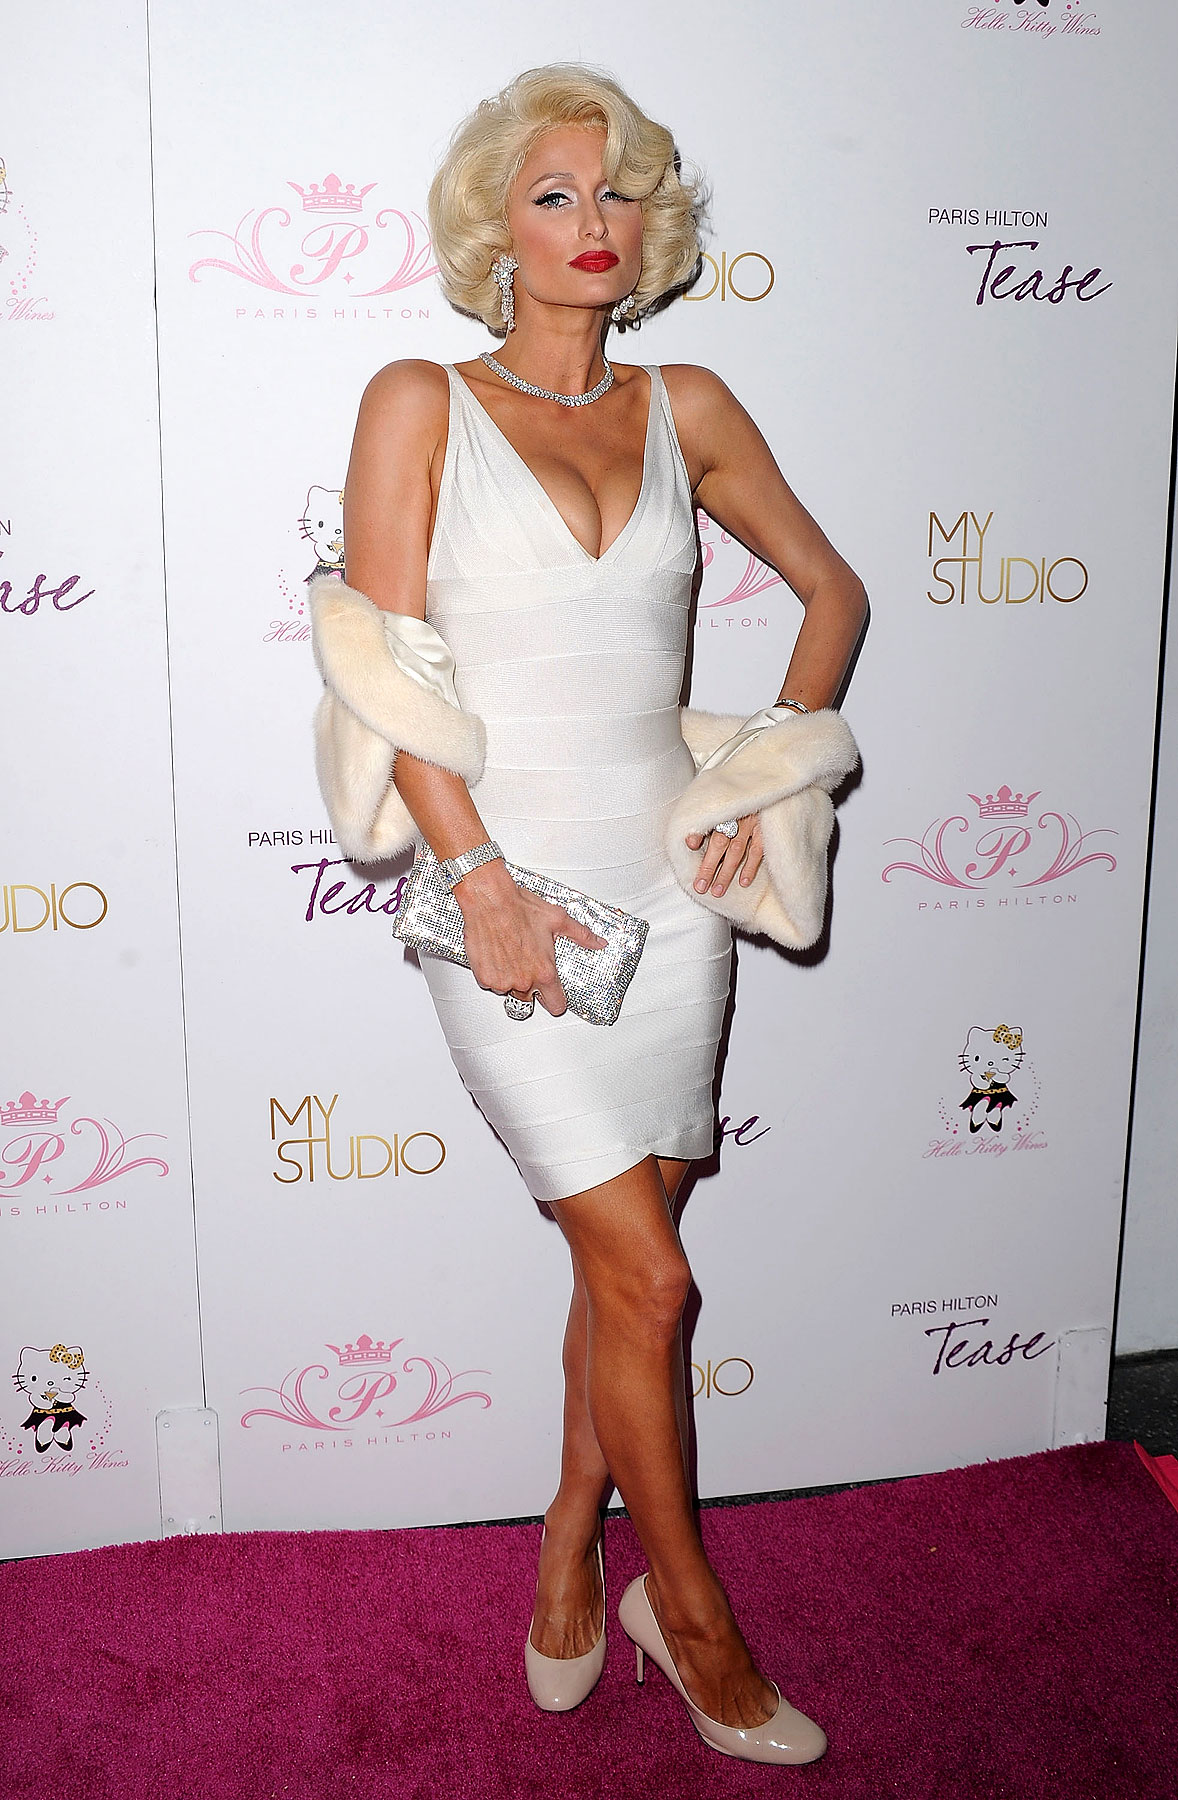 Paris Hilton Launches 'Tease' Fragrance (PHOTOS)